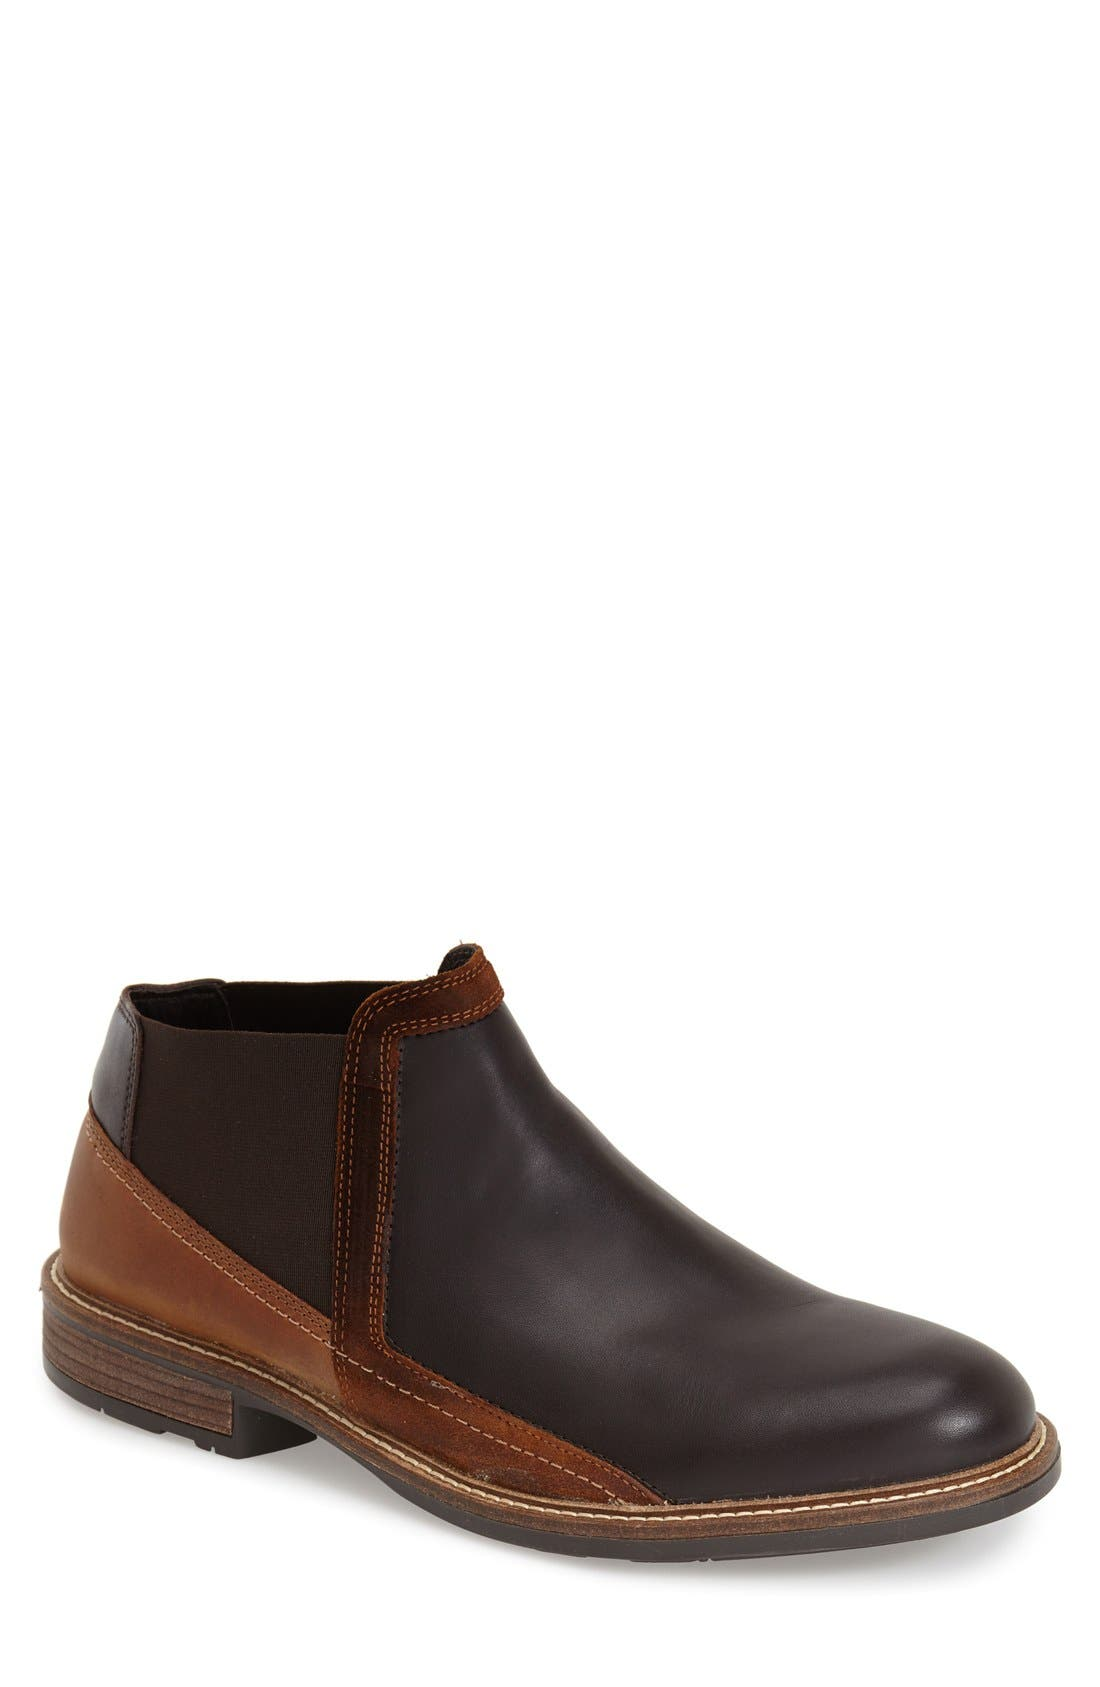 Business Chelsea Boot,                             Main thumbnail 1, color,                             ROAST/SADDLE/ SEAL BROWN SUEDE